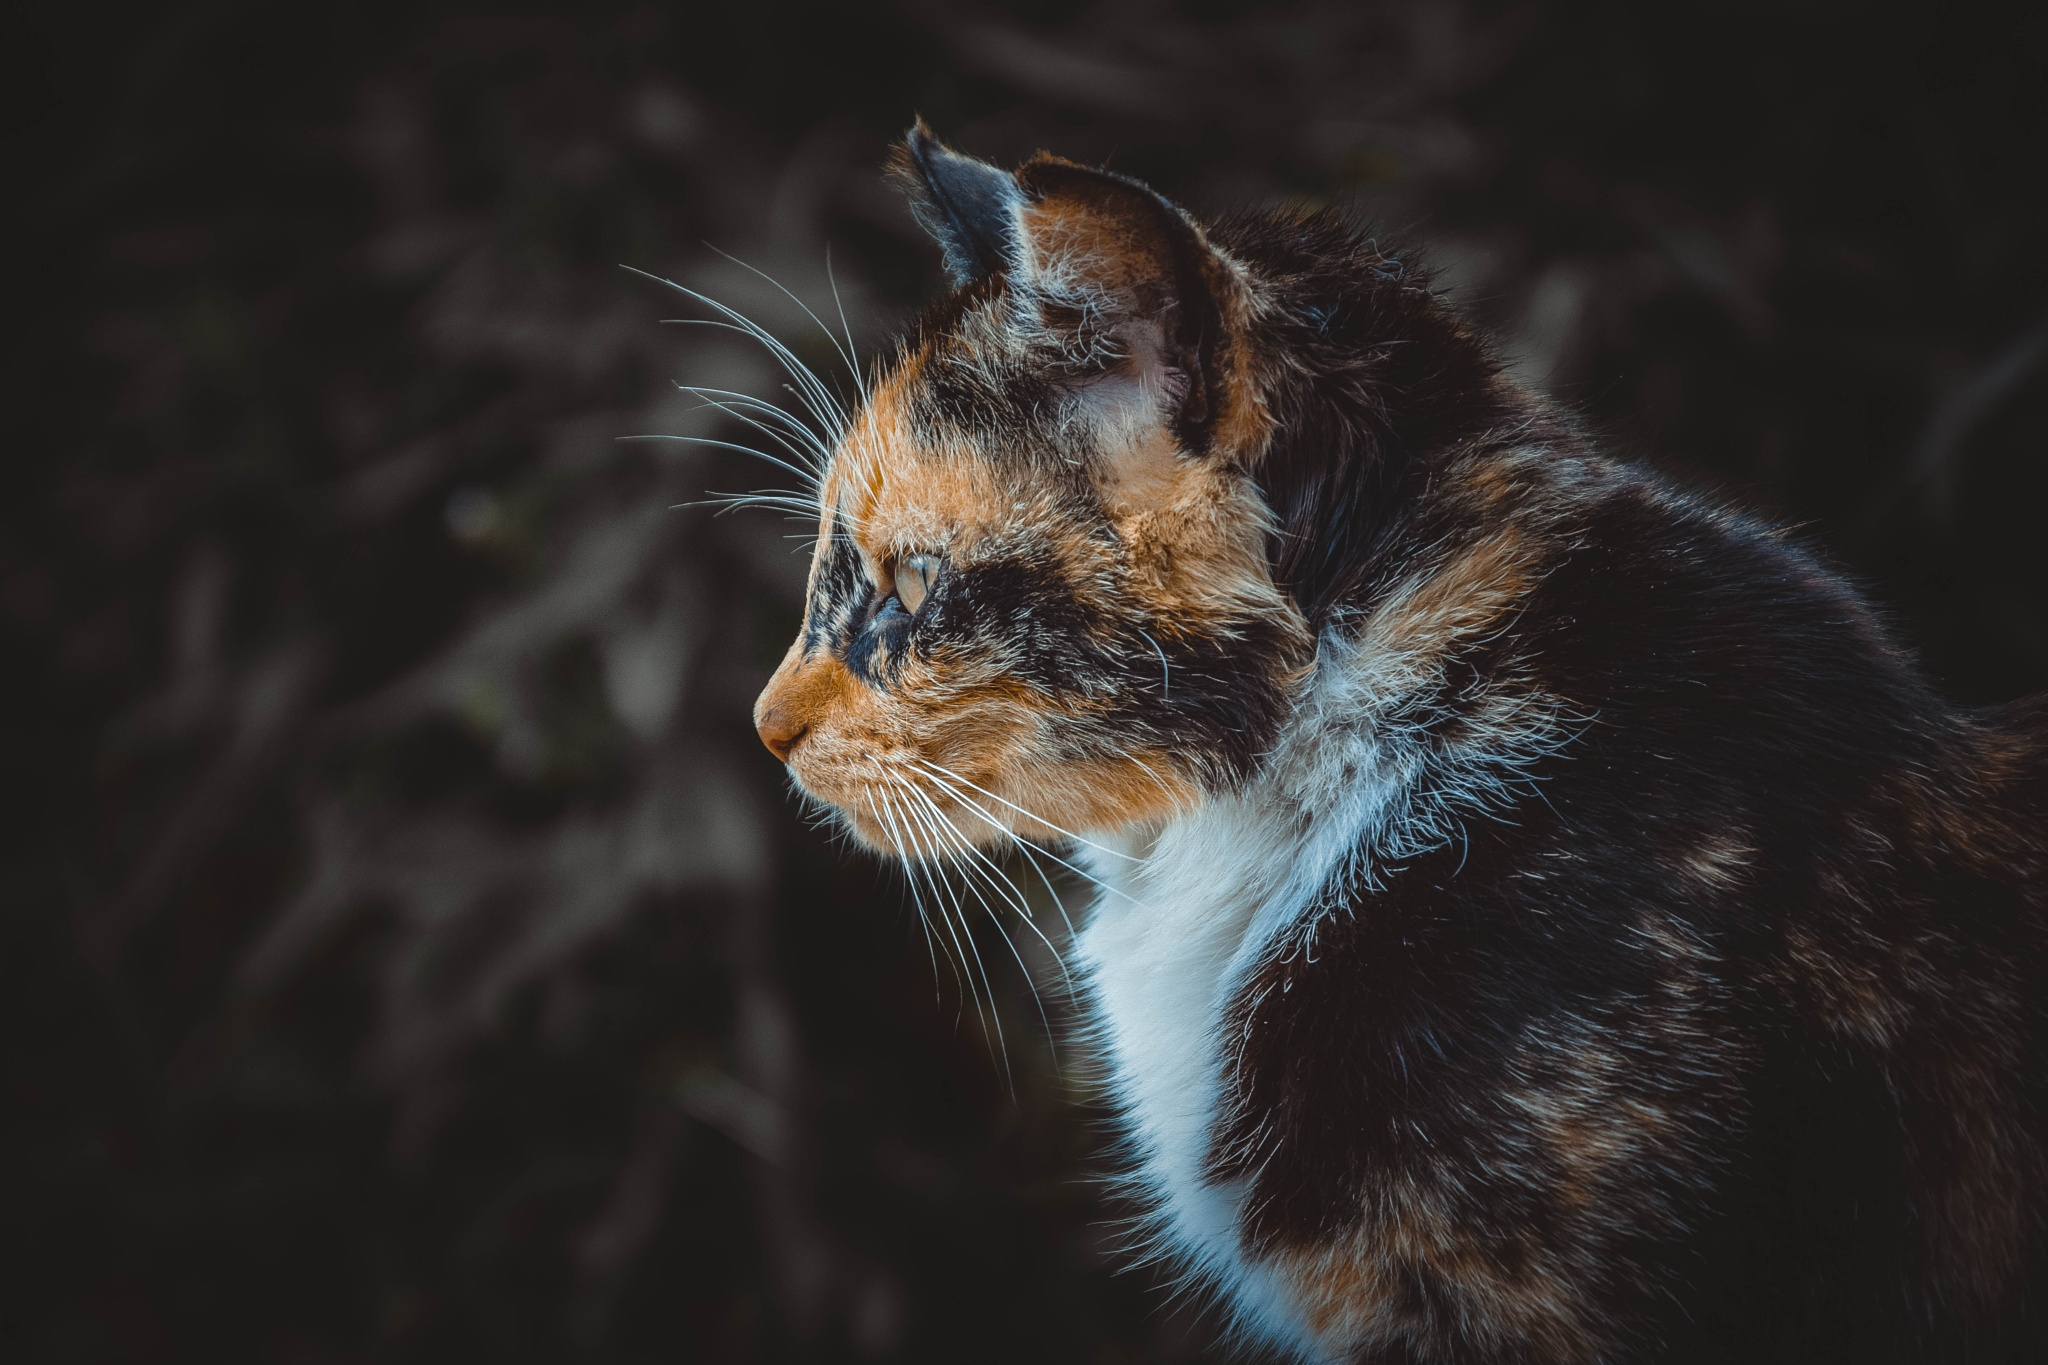 Cat by photographer_db